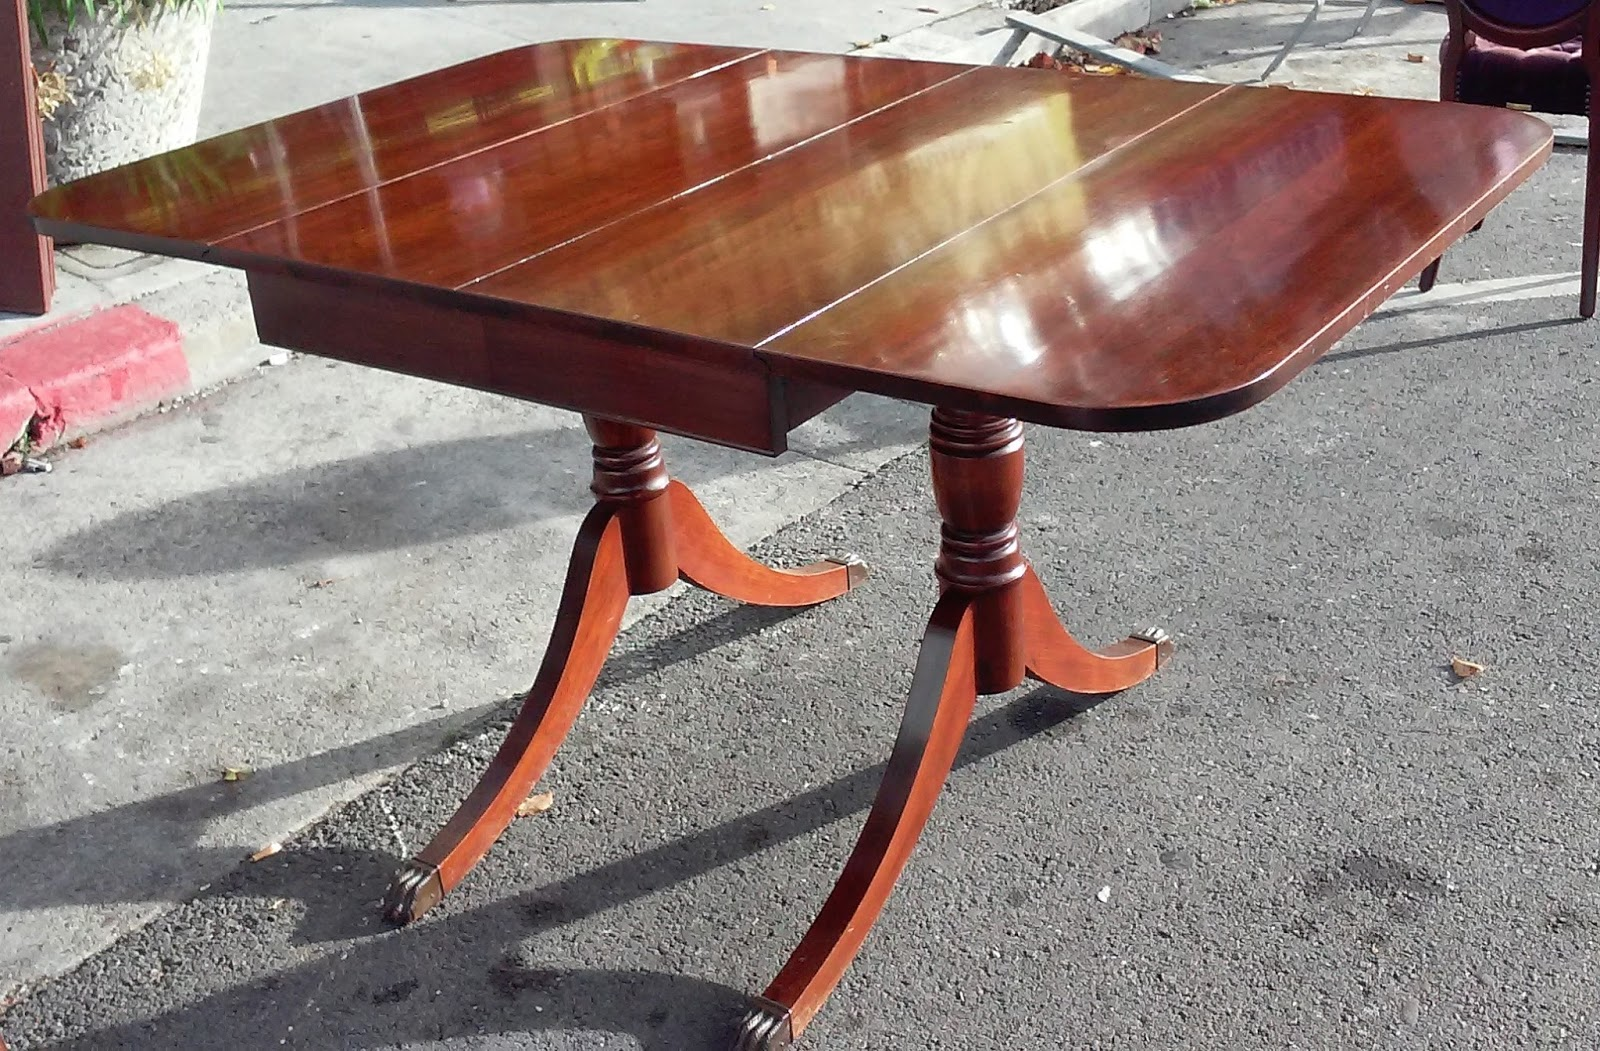 duncan phyfe chairs wheelchair racing uhuru furniture & collectibles: sold drop-leaf table - $80